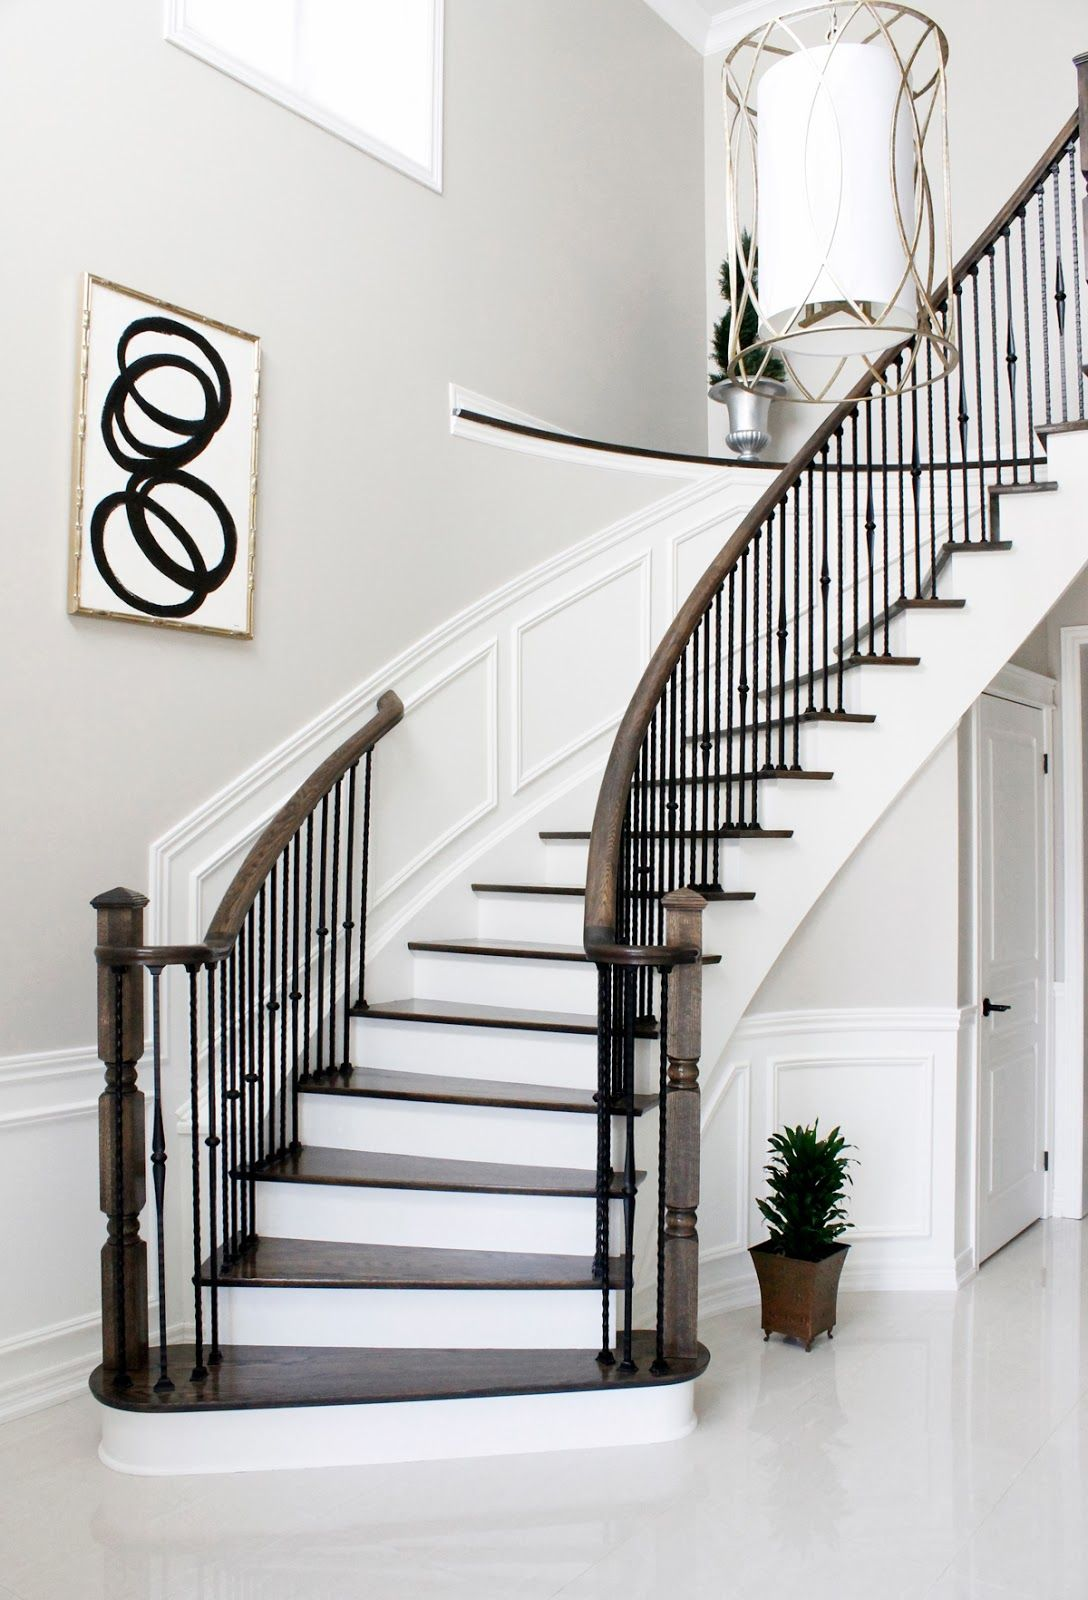 Foyer Stair Rails : Painted stairway style runner flowing into white tile